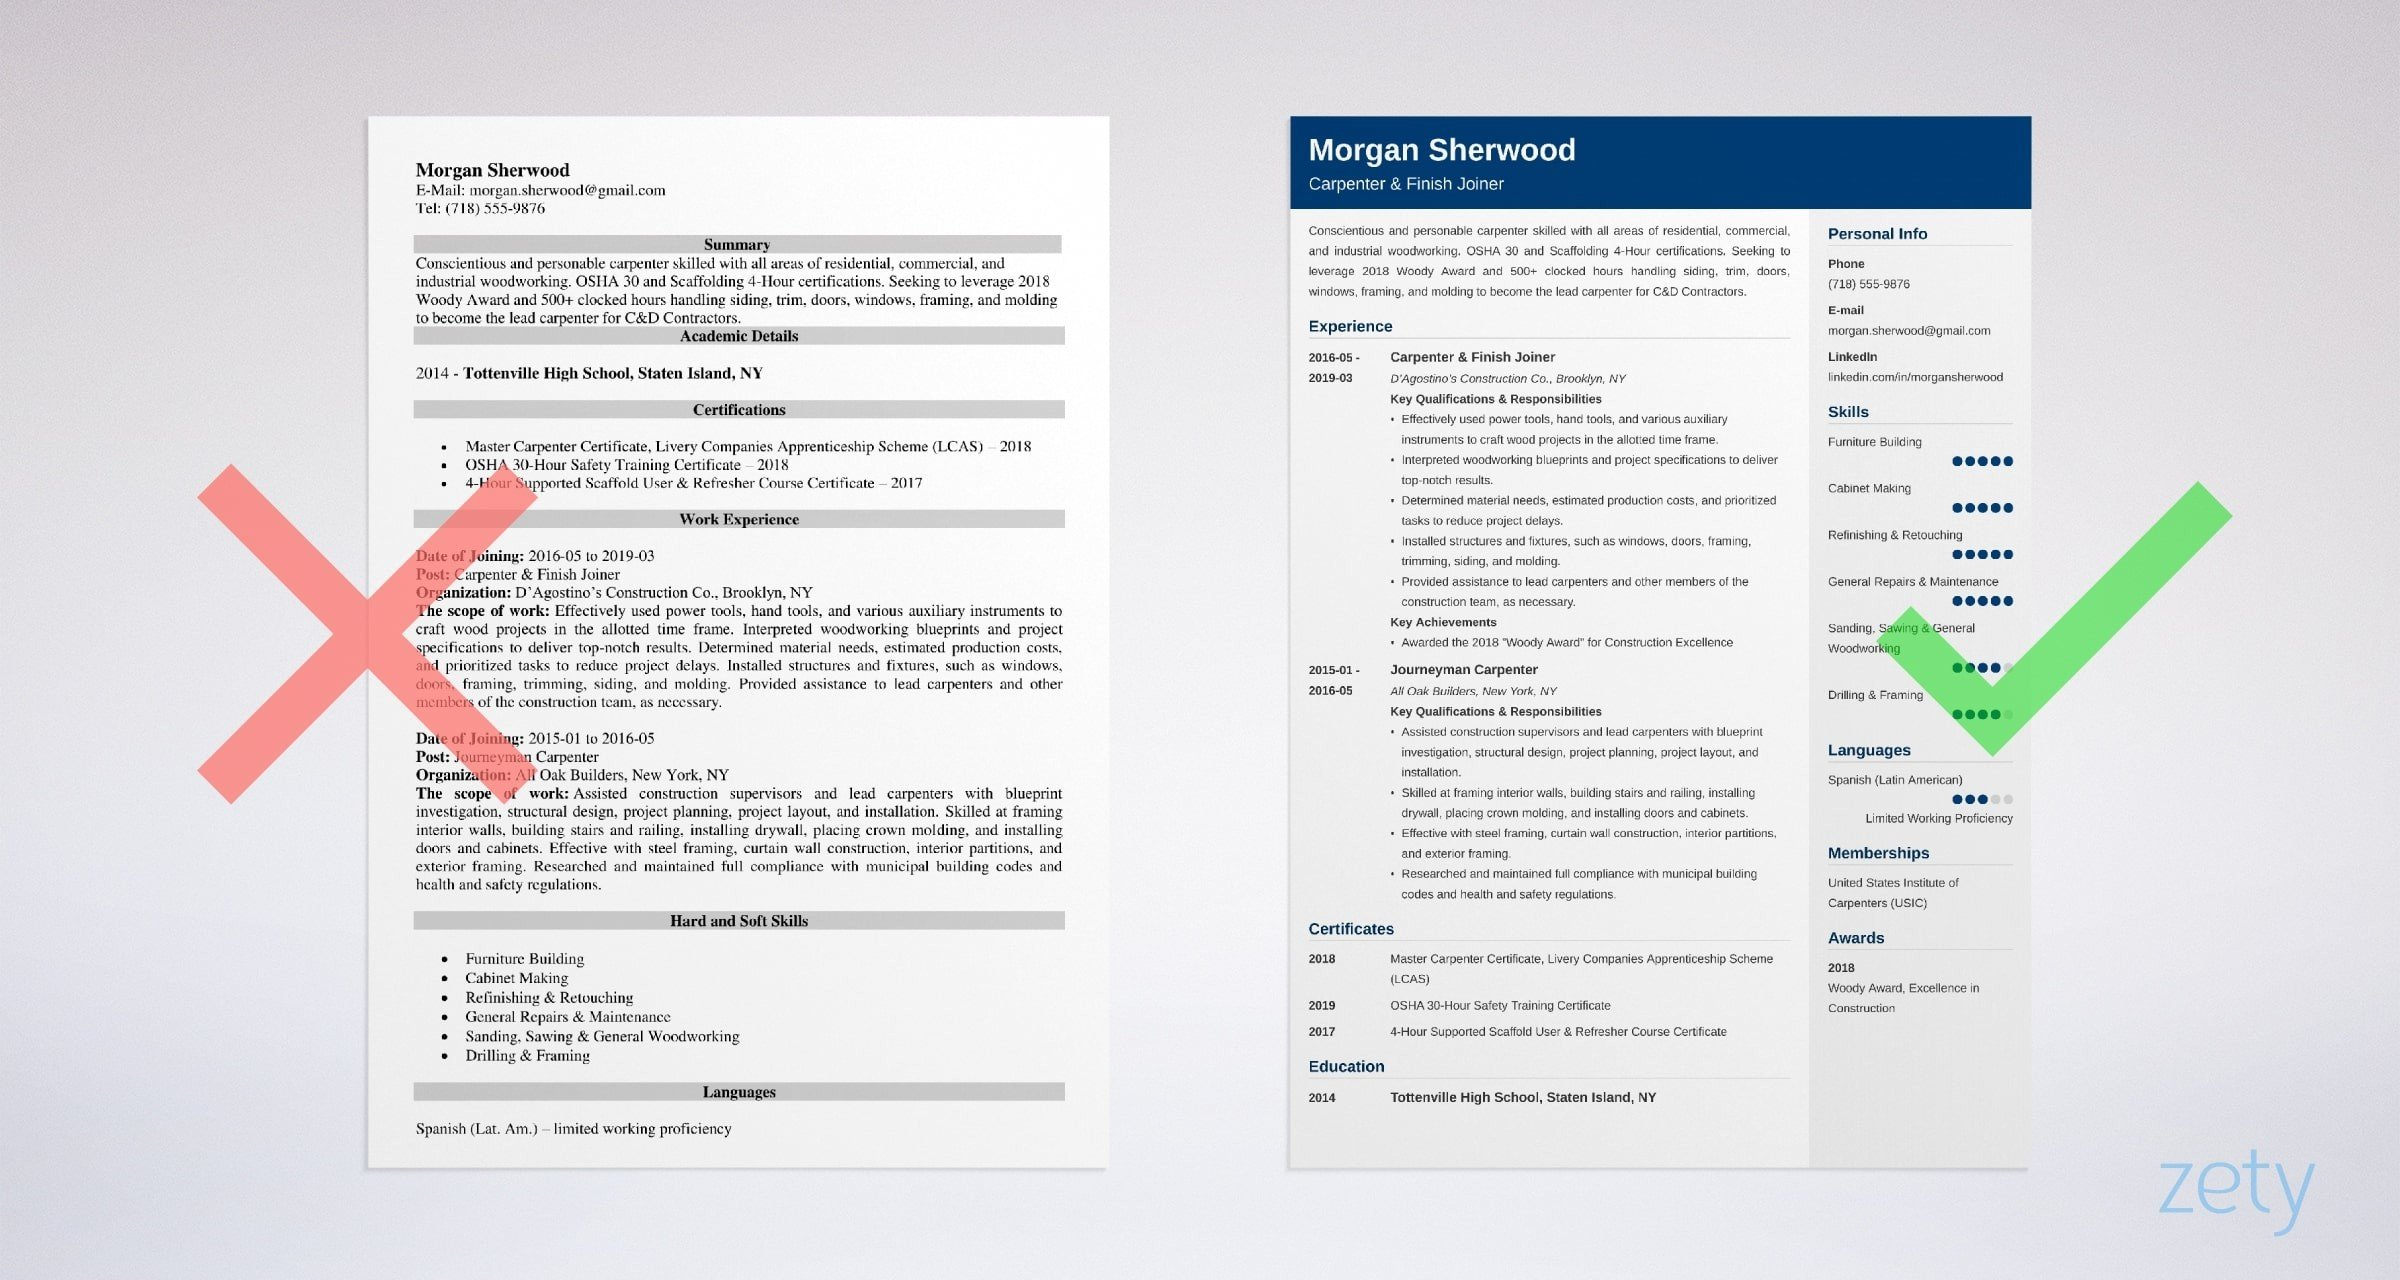 Carpenter resume, templates and cover letters plus an indeed job search engine to help you in your job search, 3 different carpenter resumes. Carpenter Resume Examples Job Description Skills Template